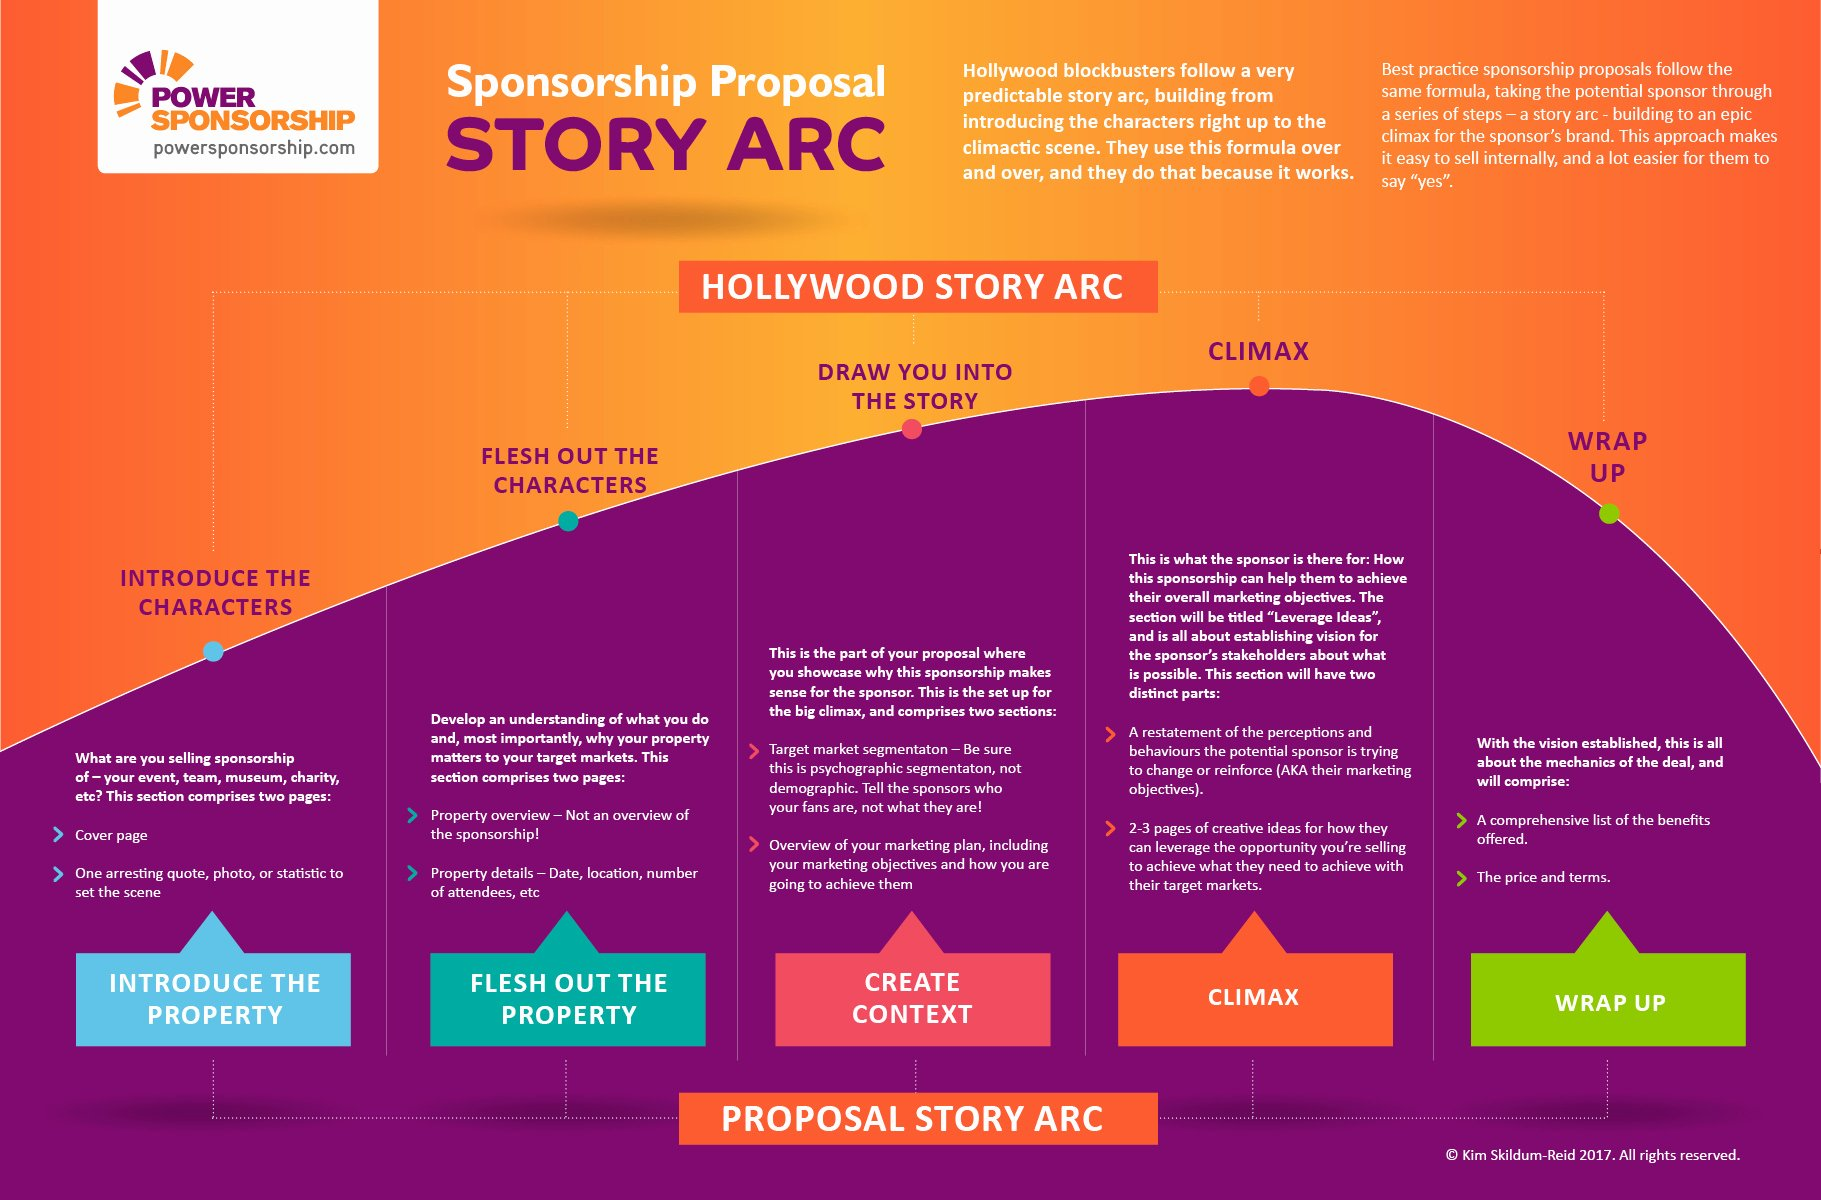 Corporate Sponsorship Proposal Template Beautiful How A Great Sponsorship Proposal Follows A Hollywood Story